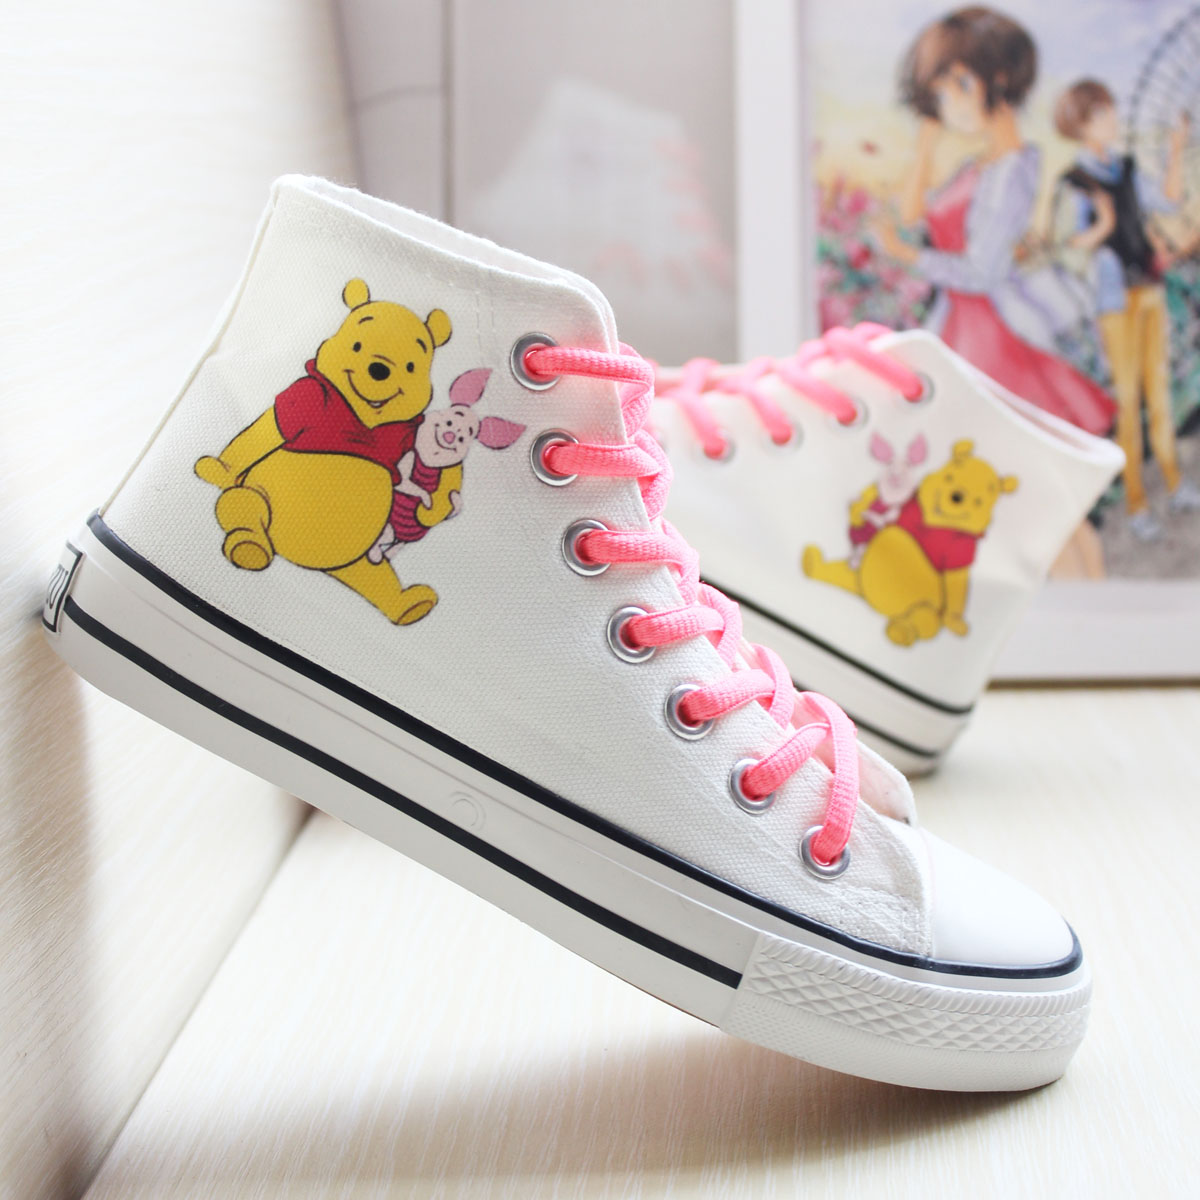 Winnie the Pooh pop sports casual shoes high top womens shoes mens shoes couples shoes canvas shoes single shoes board shoes hand painted shoes